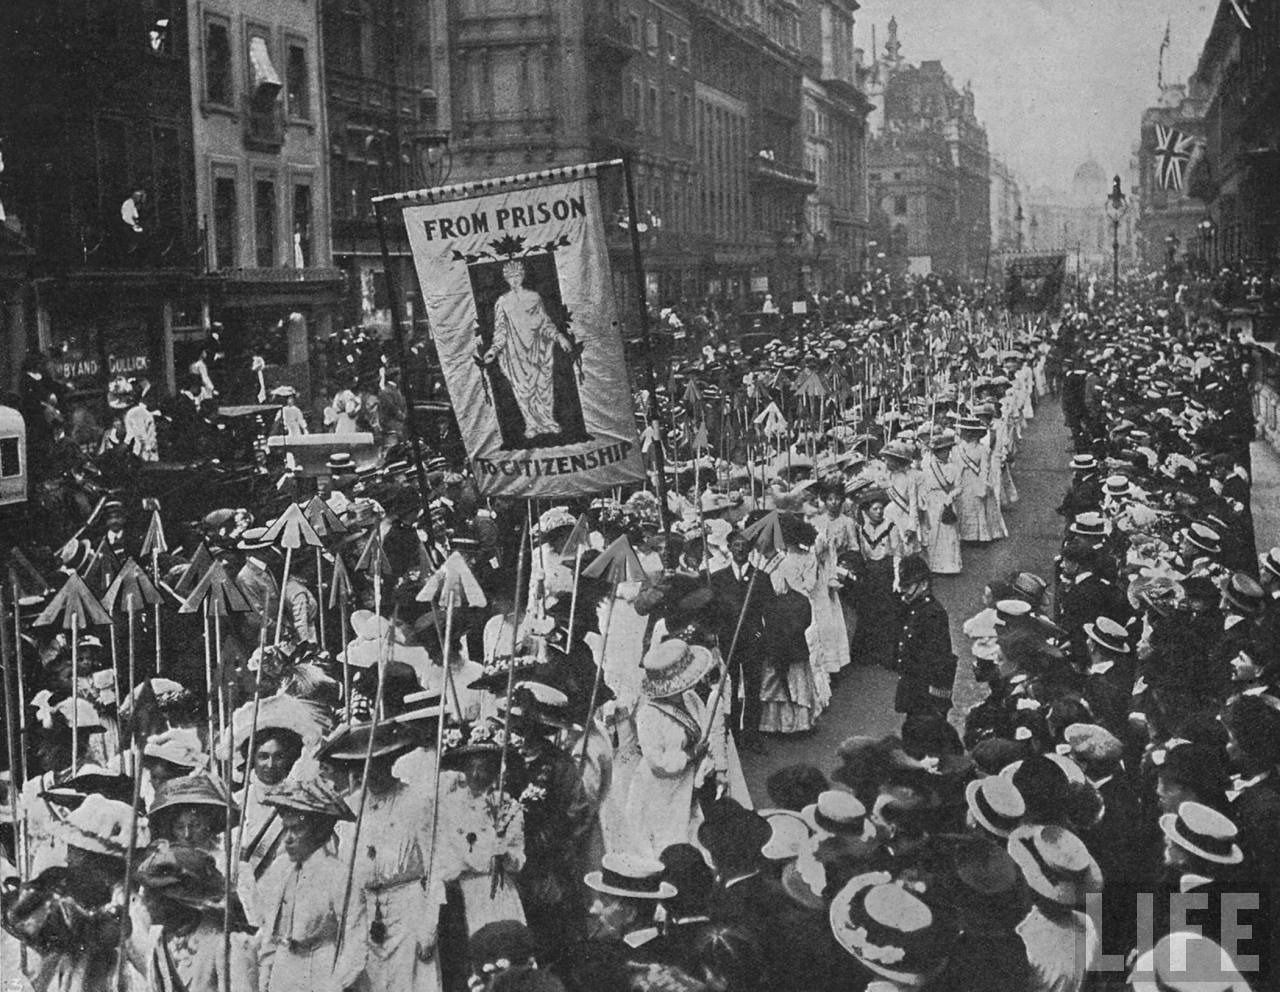 a history of the womans suffrage movement in the 19th century england Women in nineteenth-century america by dr graham warder, keene state college  during the first half of the nineteenth century, the evangelical fires of the second great awakening swept the nation.